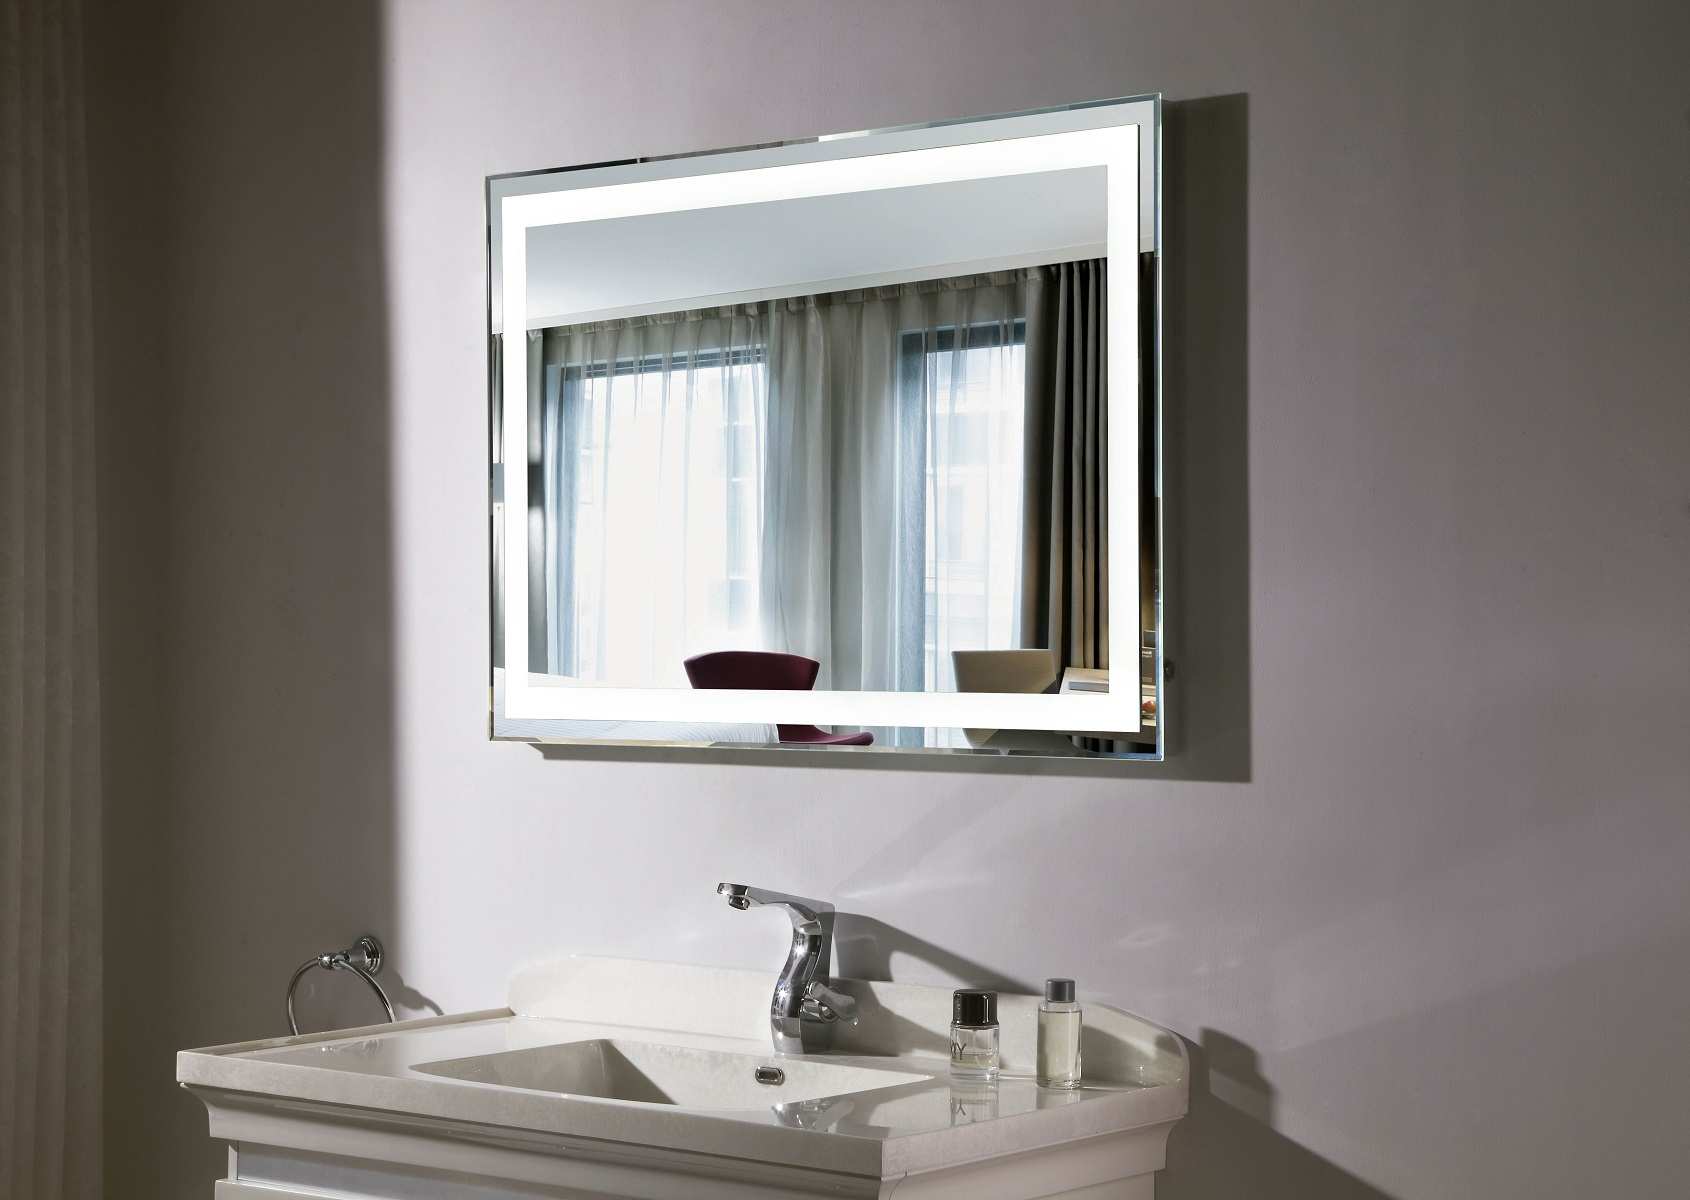 Budapest iii lighted vanity mirror led bathroom mirror Bathroom lighted vanity mirrors